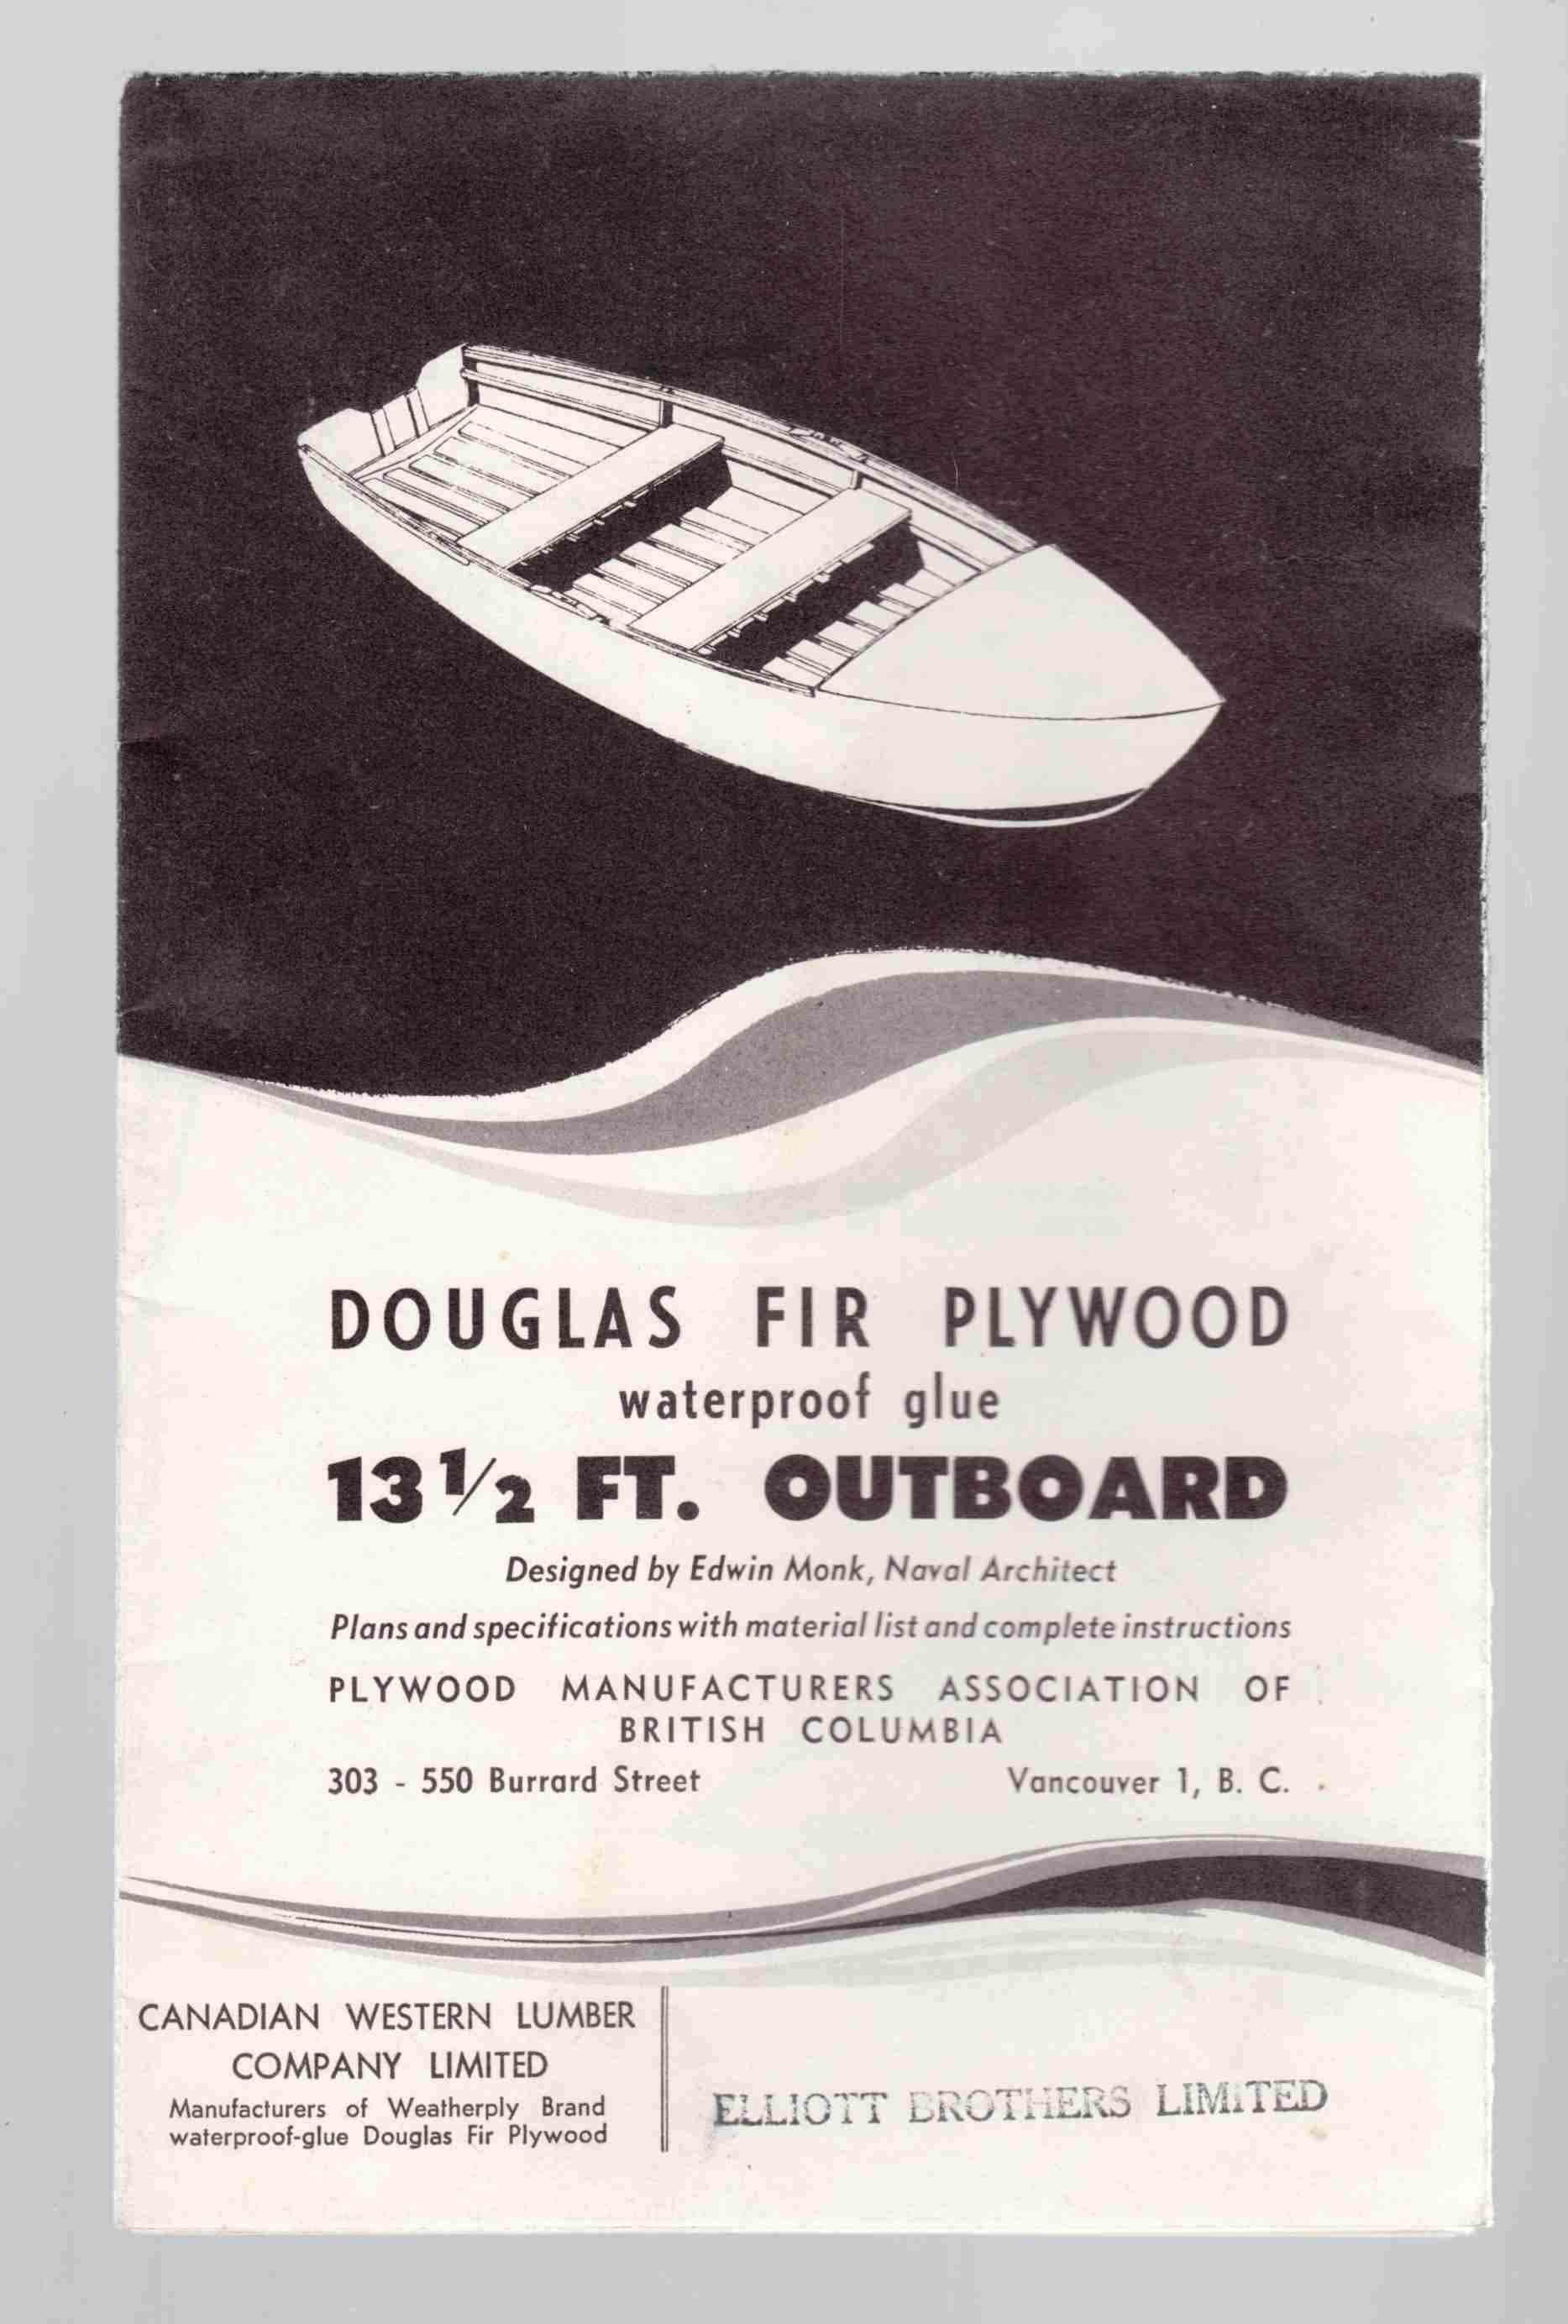 Image for Douglas Fir Plywood Waterproof Glue 13 1/2 Ft. Outboard